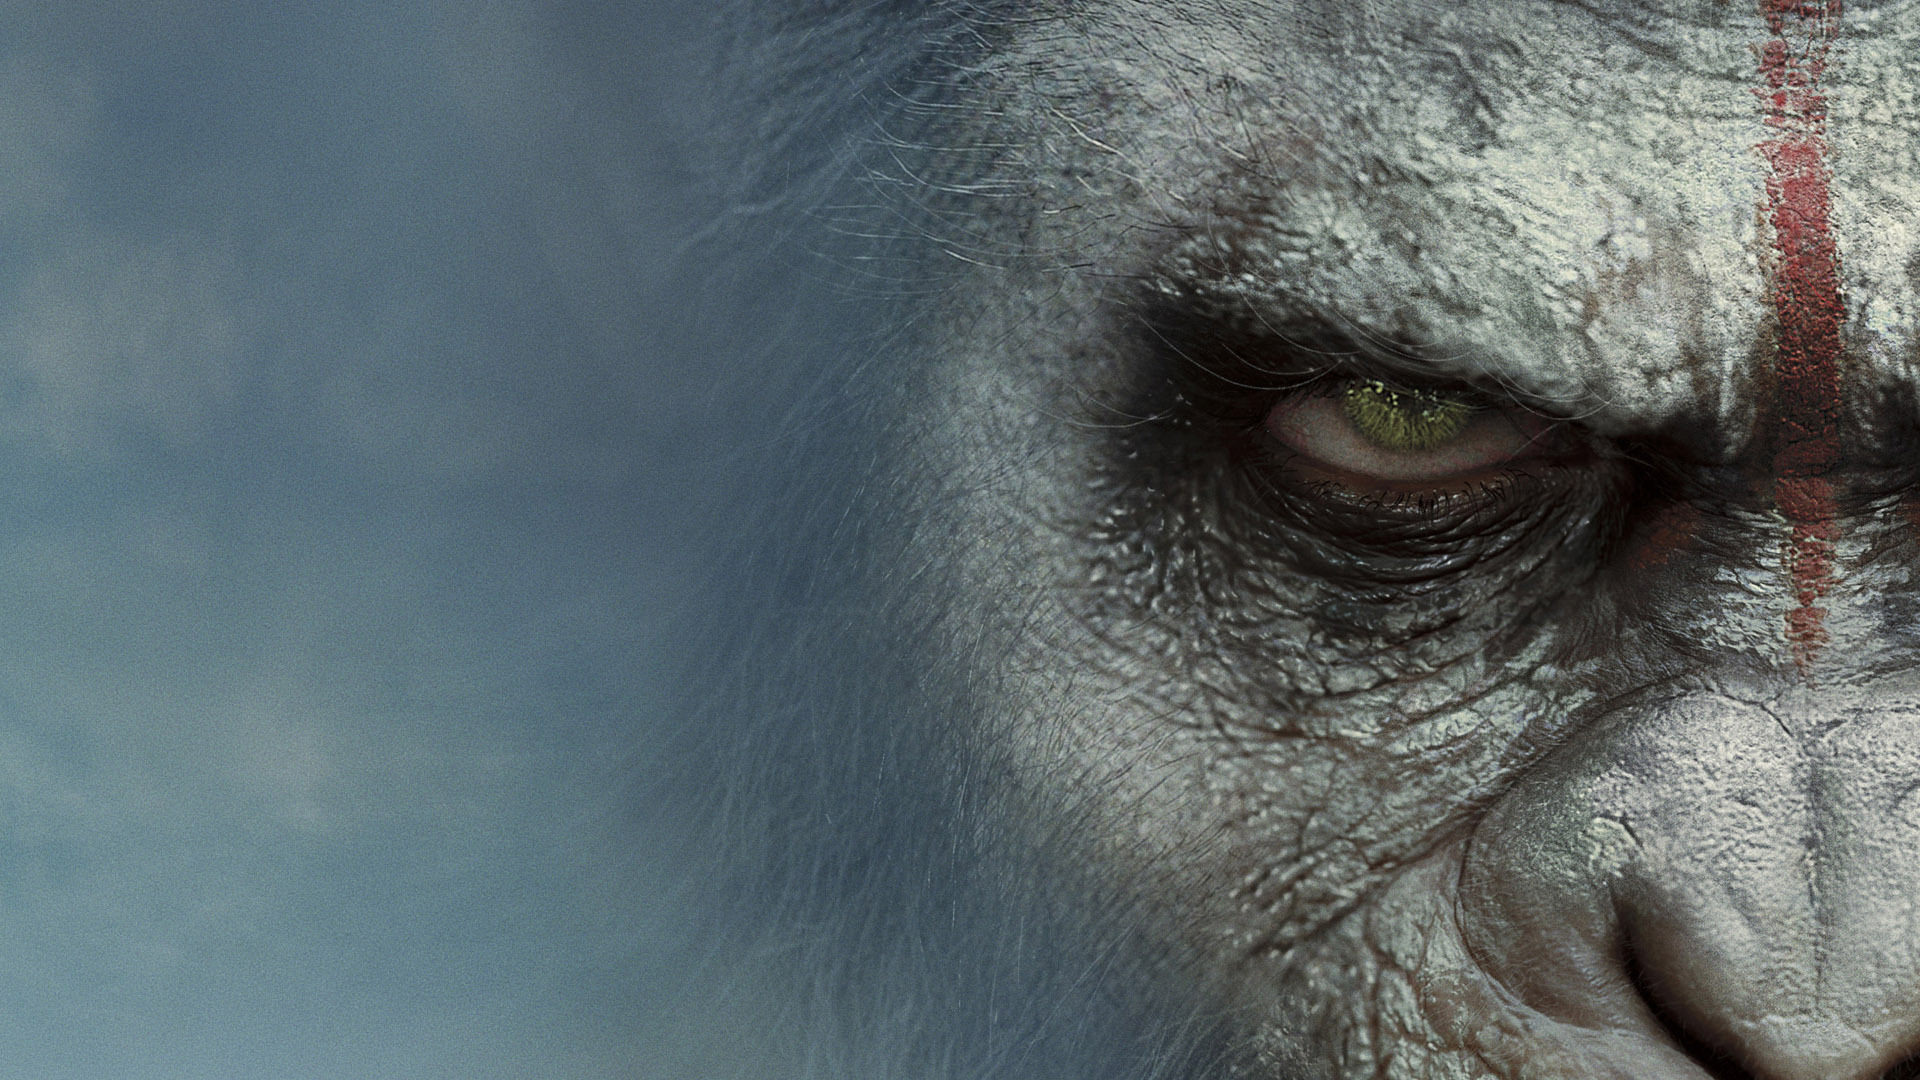 Planet Of The Apes Wallpaper: War For The Planet Of The Apes Wallpapers Images Photos